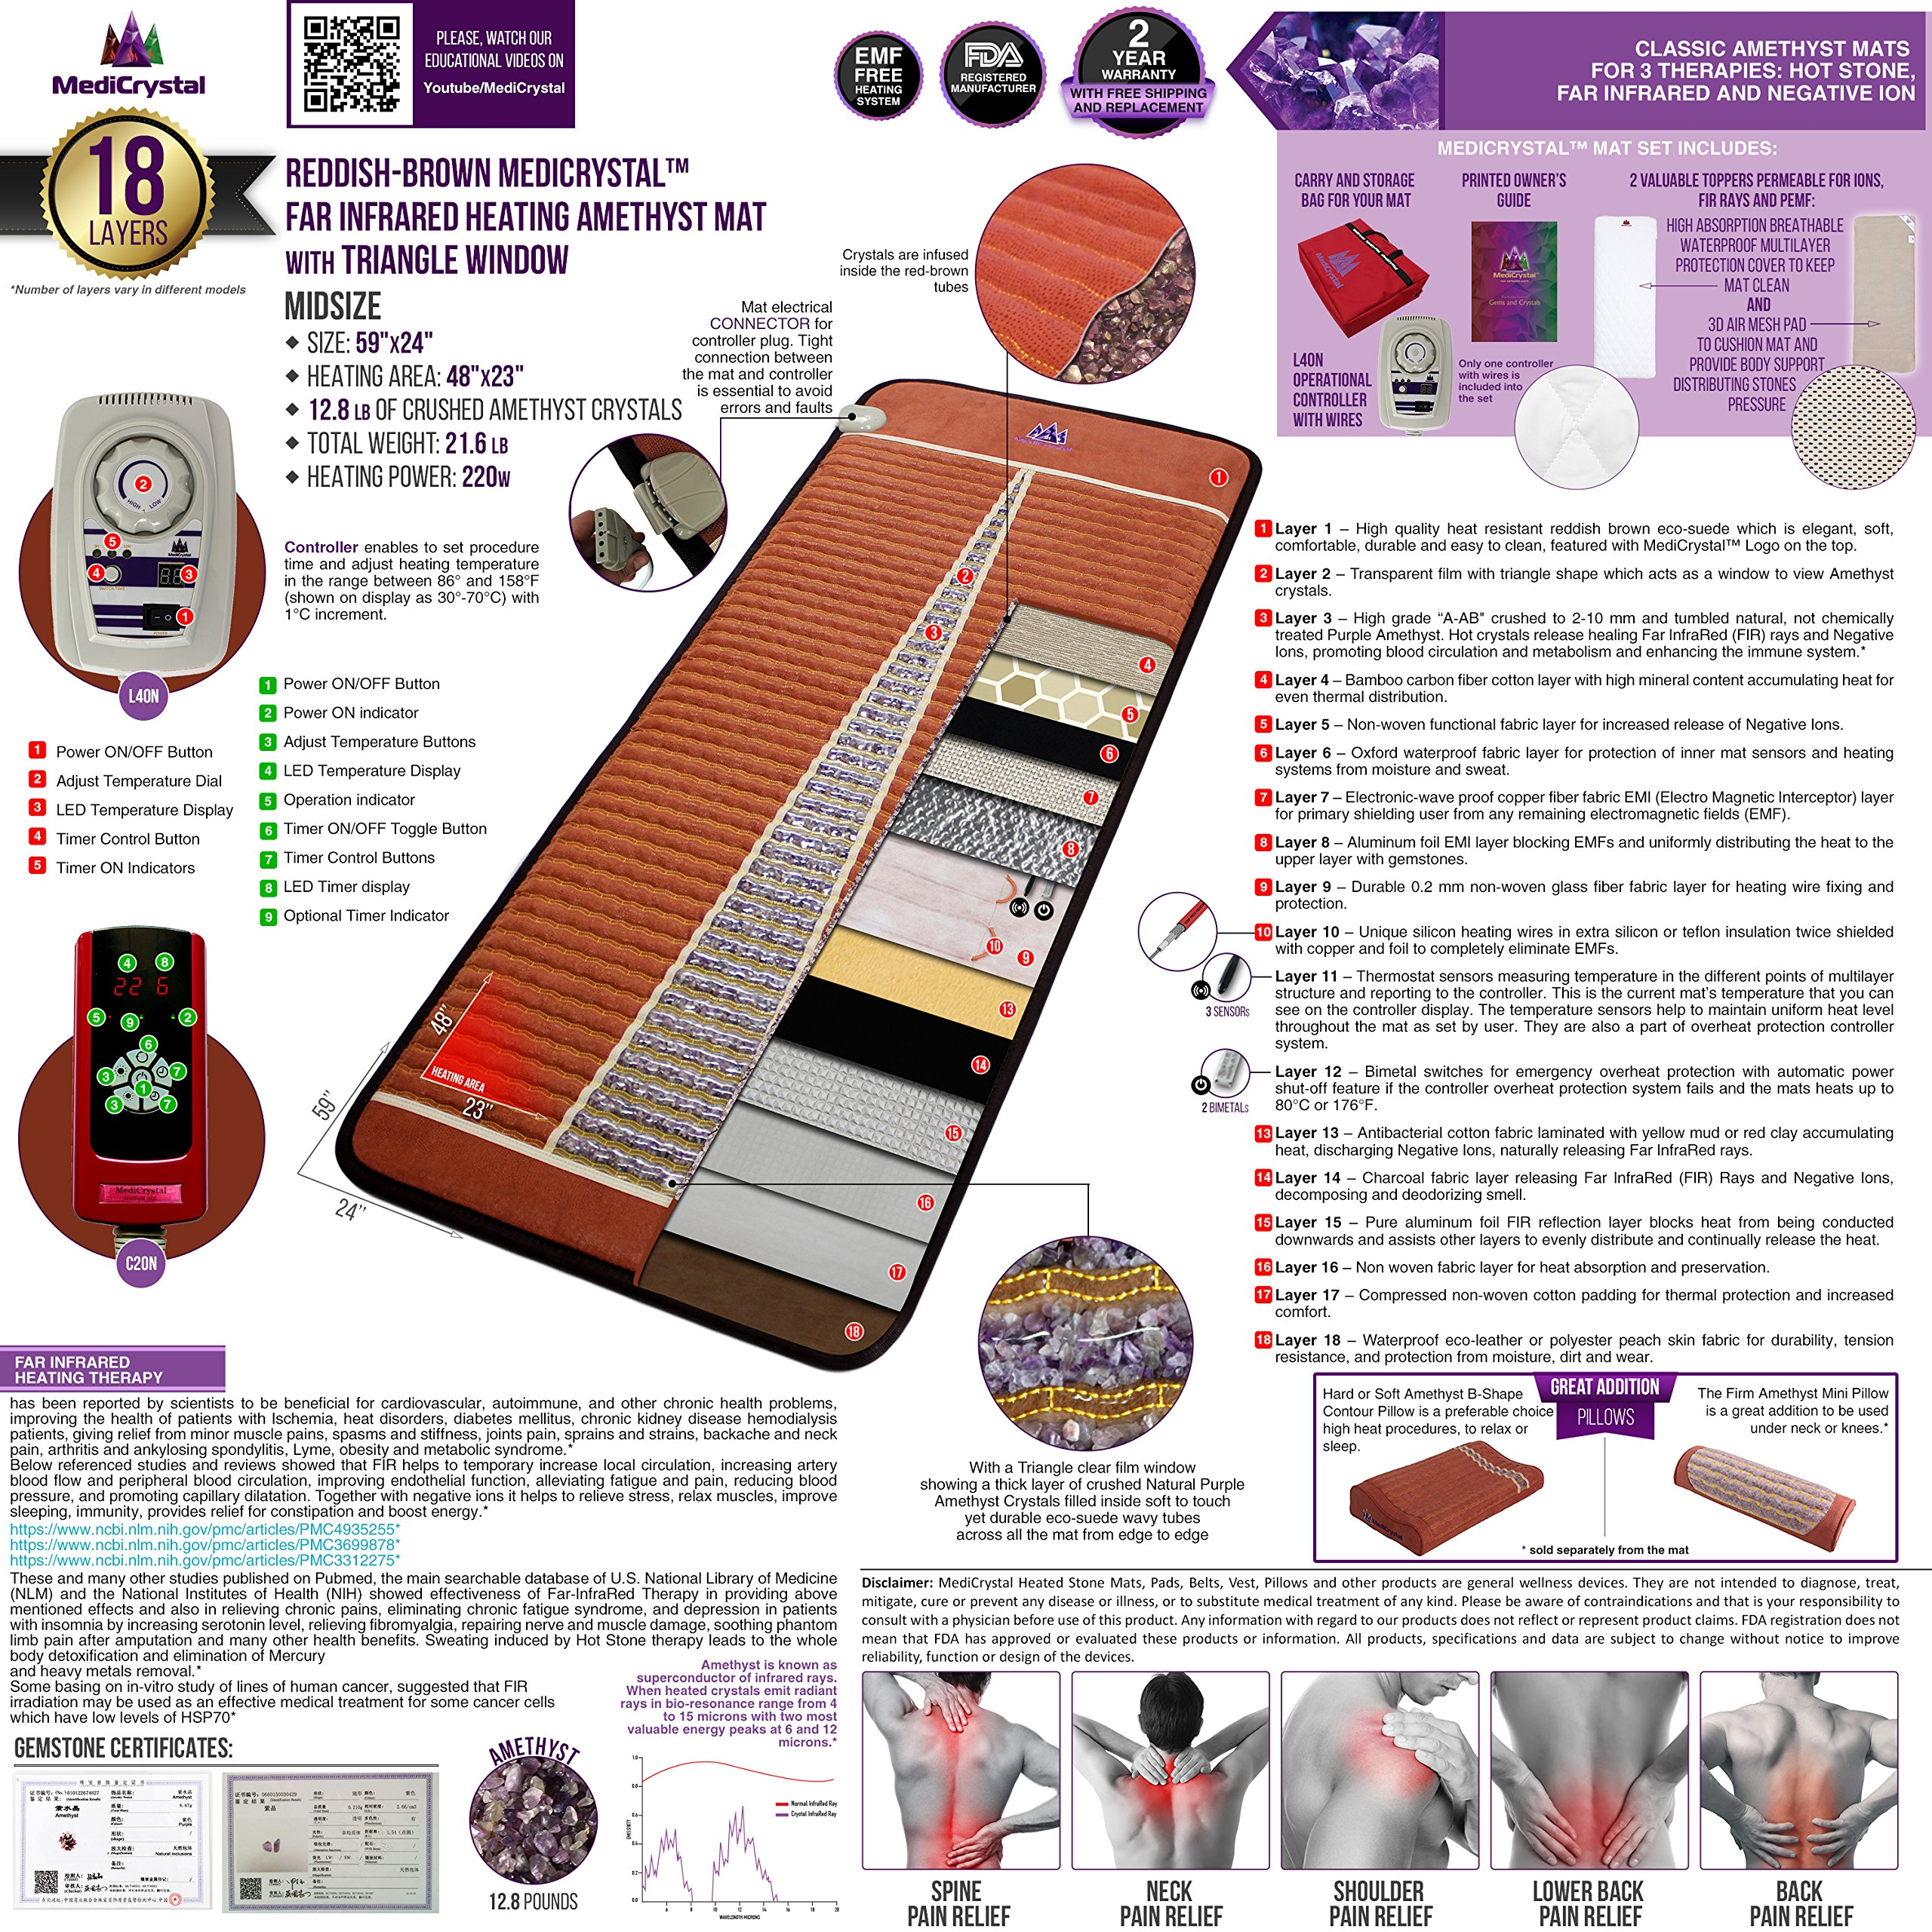 Far Infrared Amethyst Mat Midsize (59''L x 24''W) - Negative Ion - FIR Therapy - Natural Amethyst - FDA Registered Manufacturer - Adjustable Temperature Setting - Hot Crystal Heating Pad - Reddish Brown by MediCrystal (Image #3)